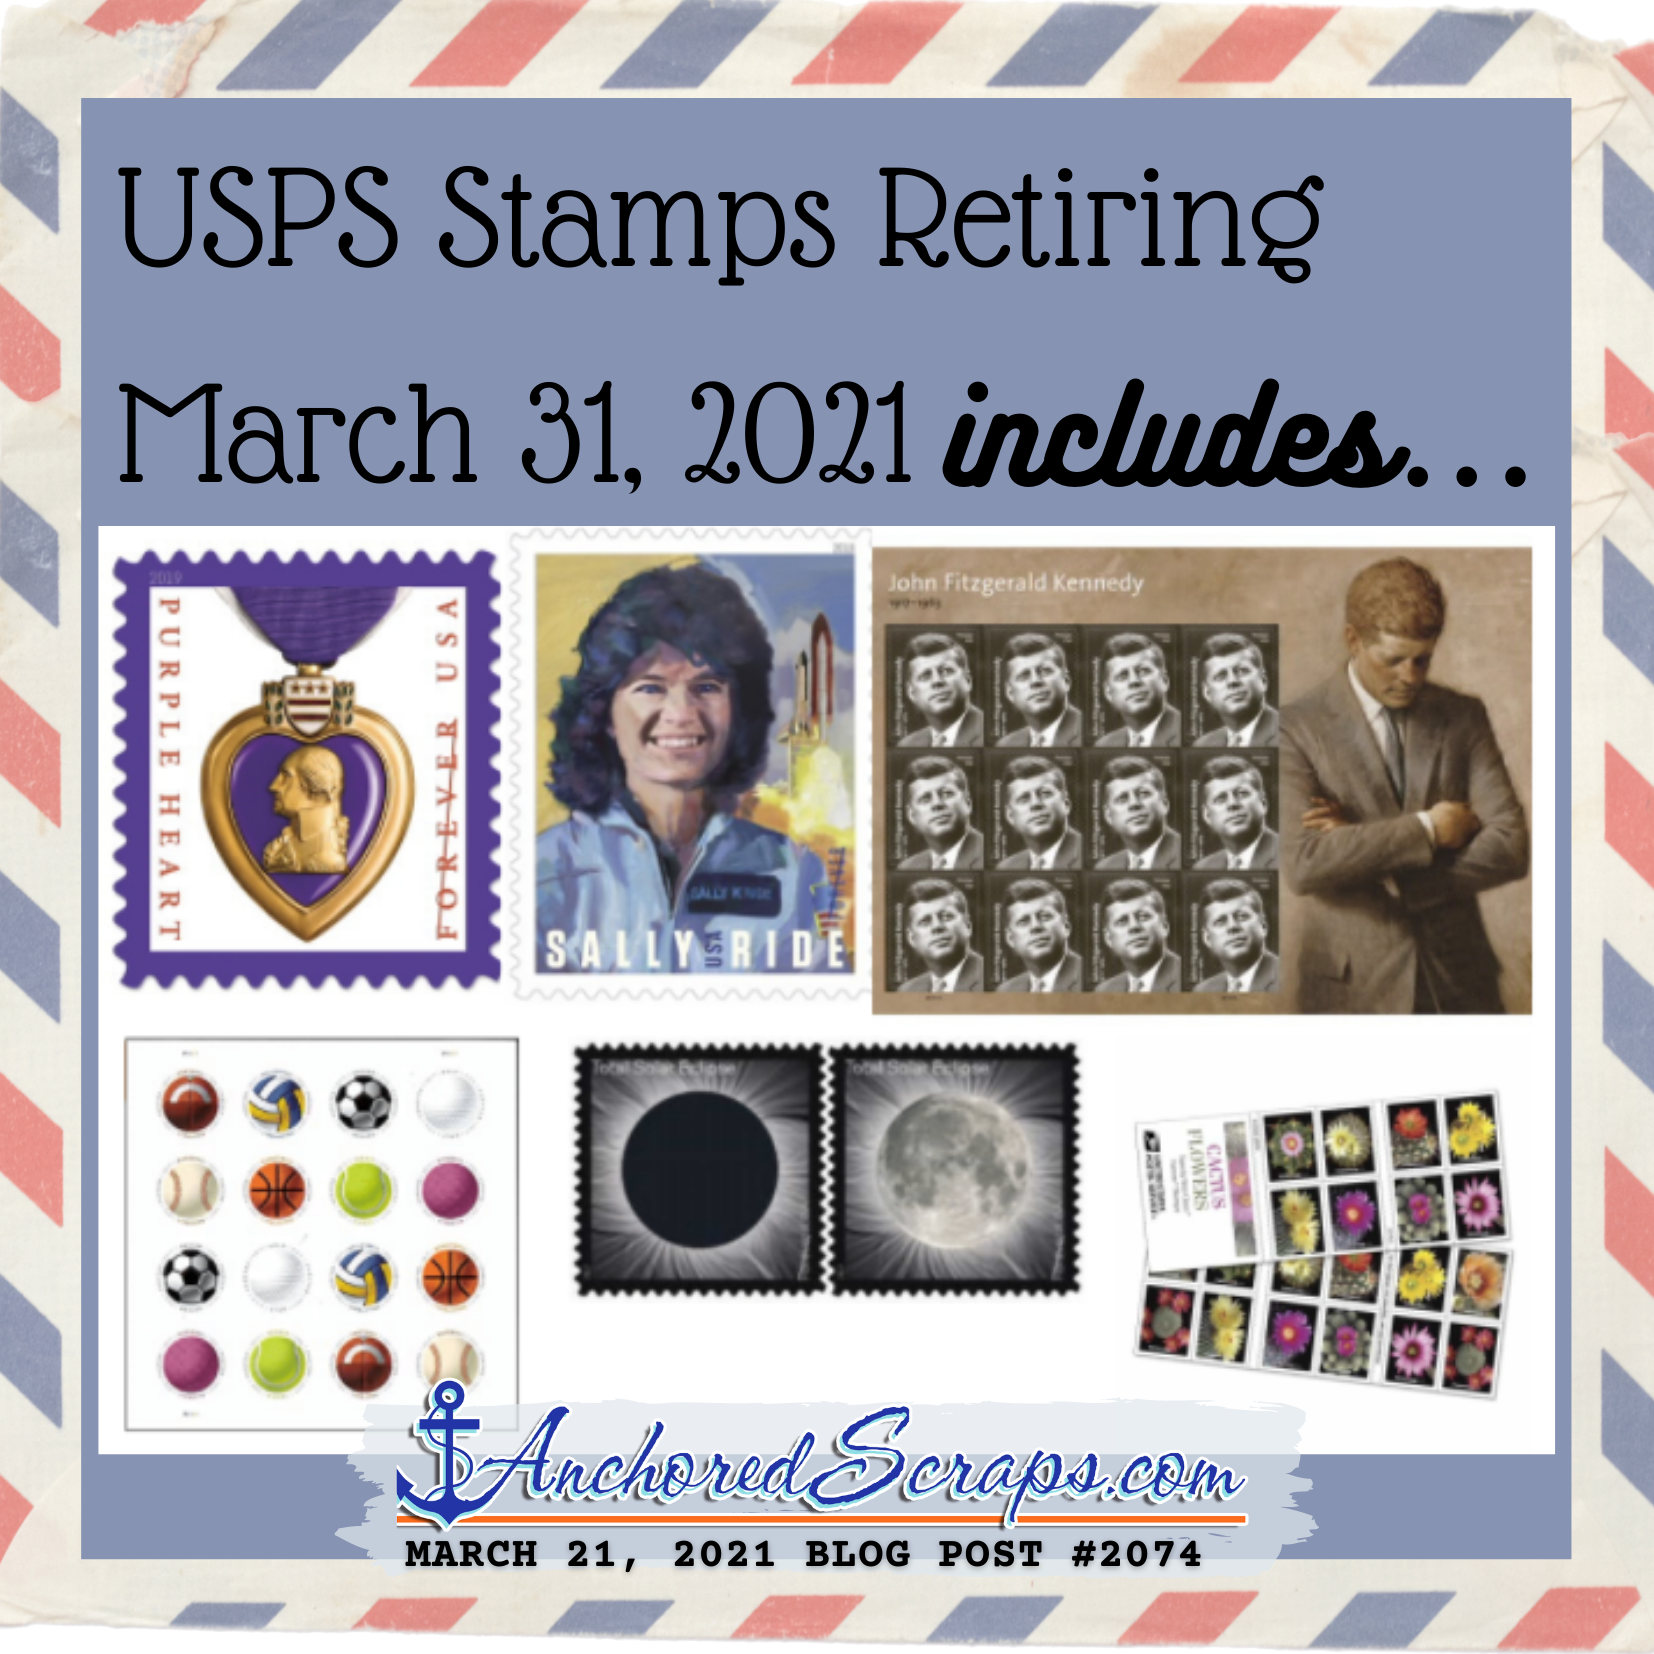 USPS Stamps Retiring March 31, 2021 includes